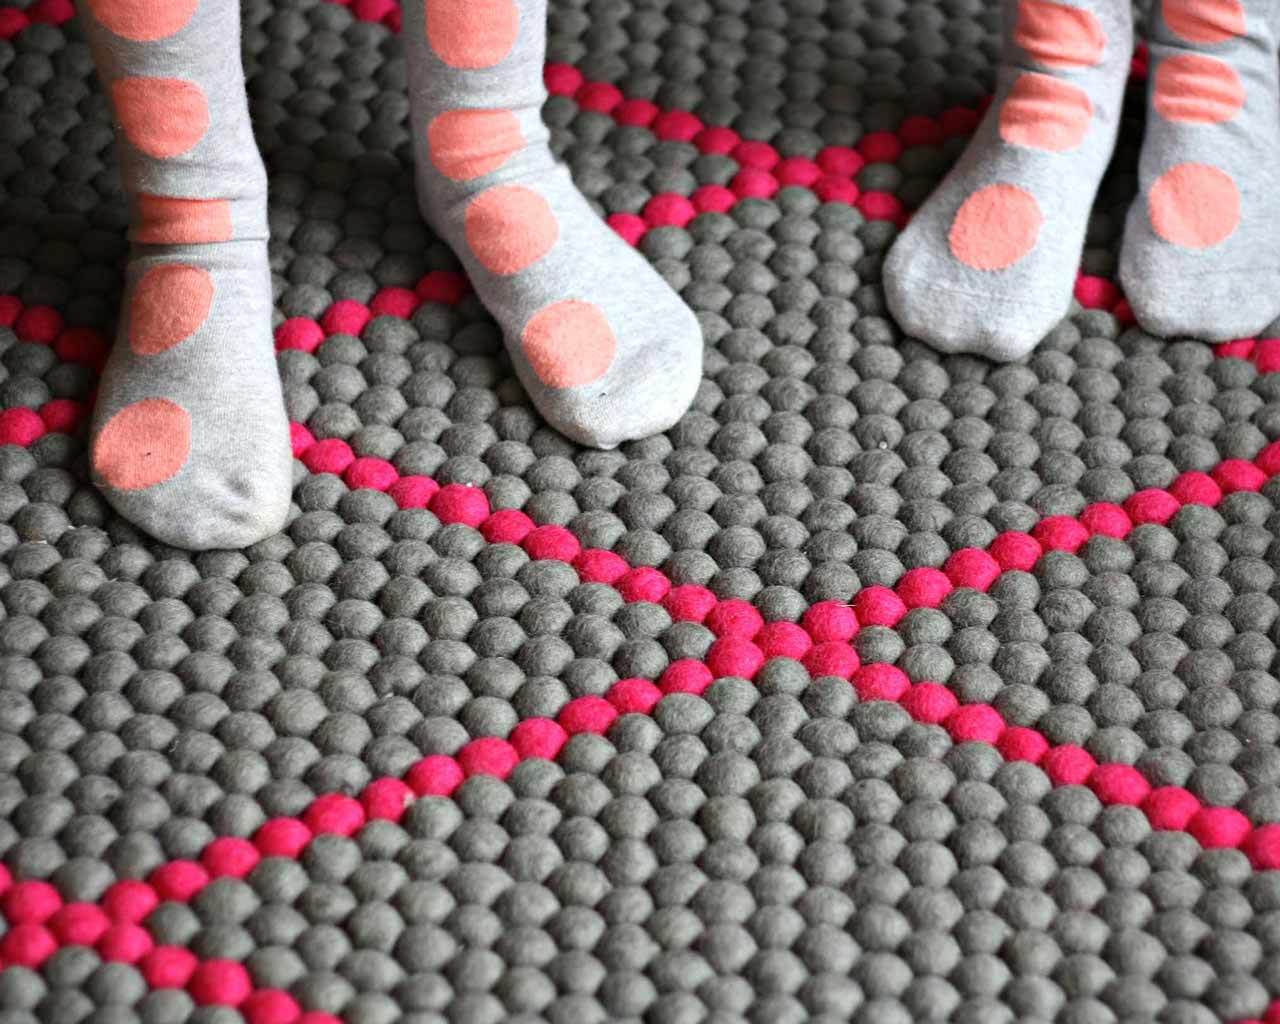 socks matching wool carpet custom made lines